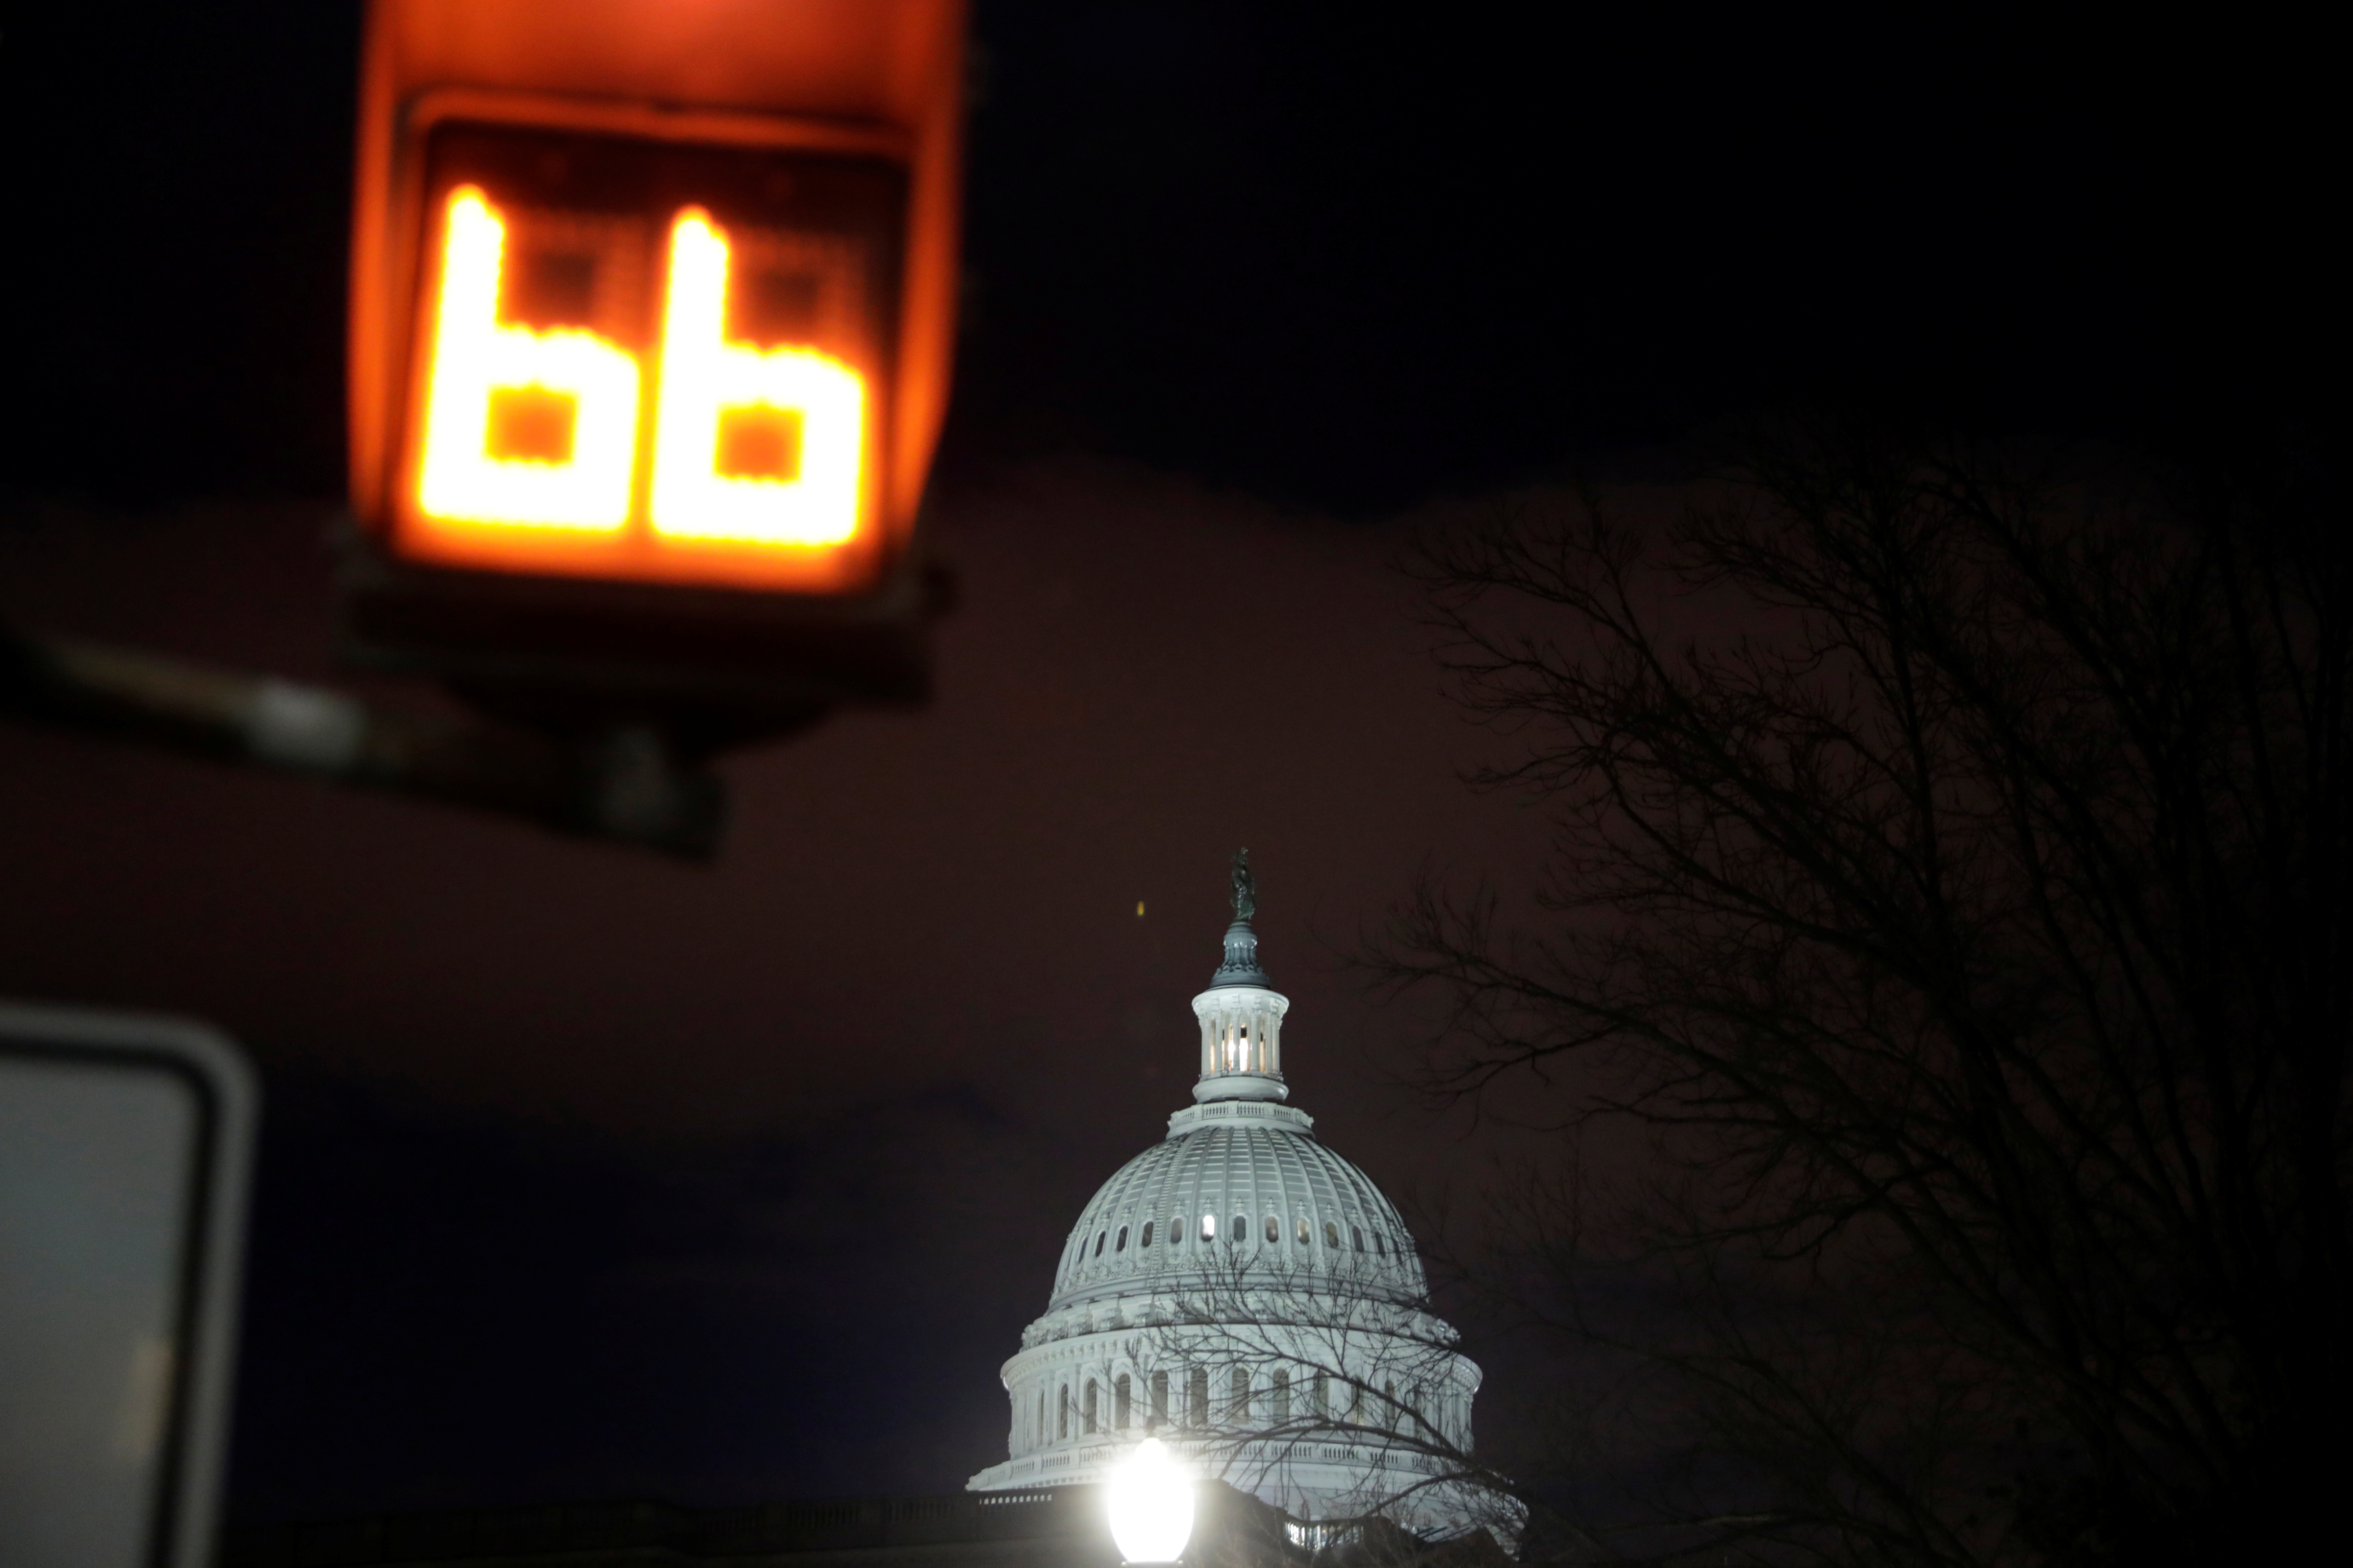 FILE PHOTO: The U.S. Capitol is seen in Washington, U.S., January 16, 2019. REUTERS/Yuri Gripas